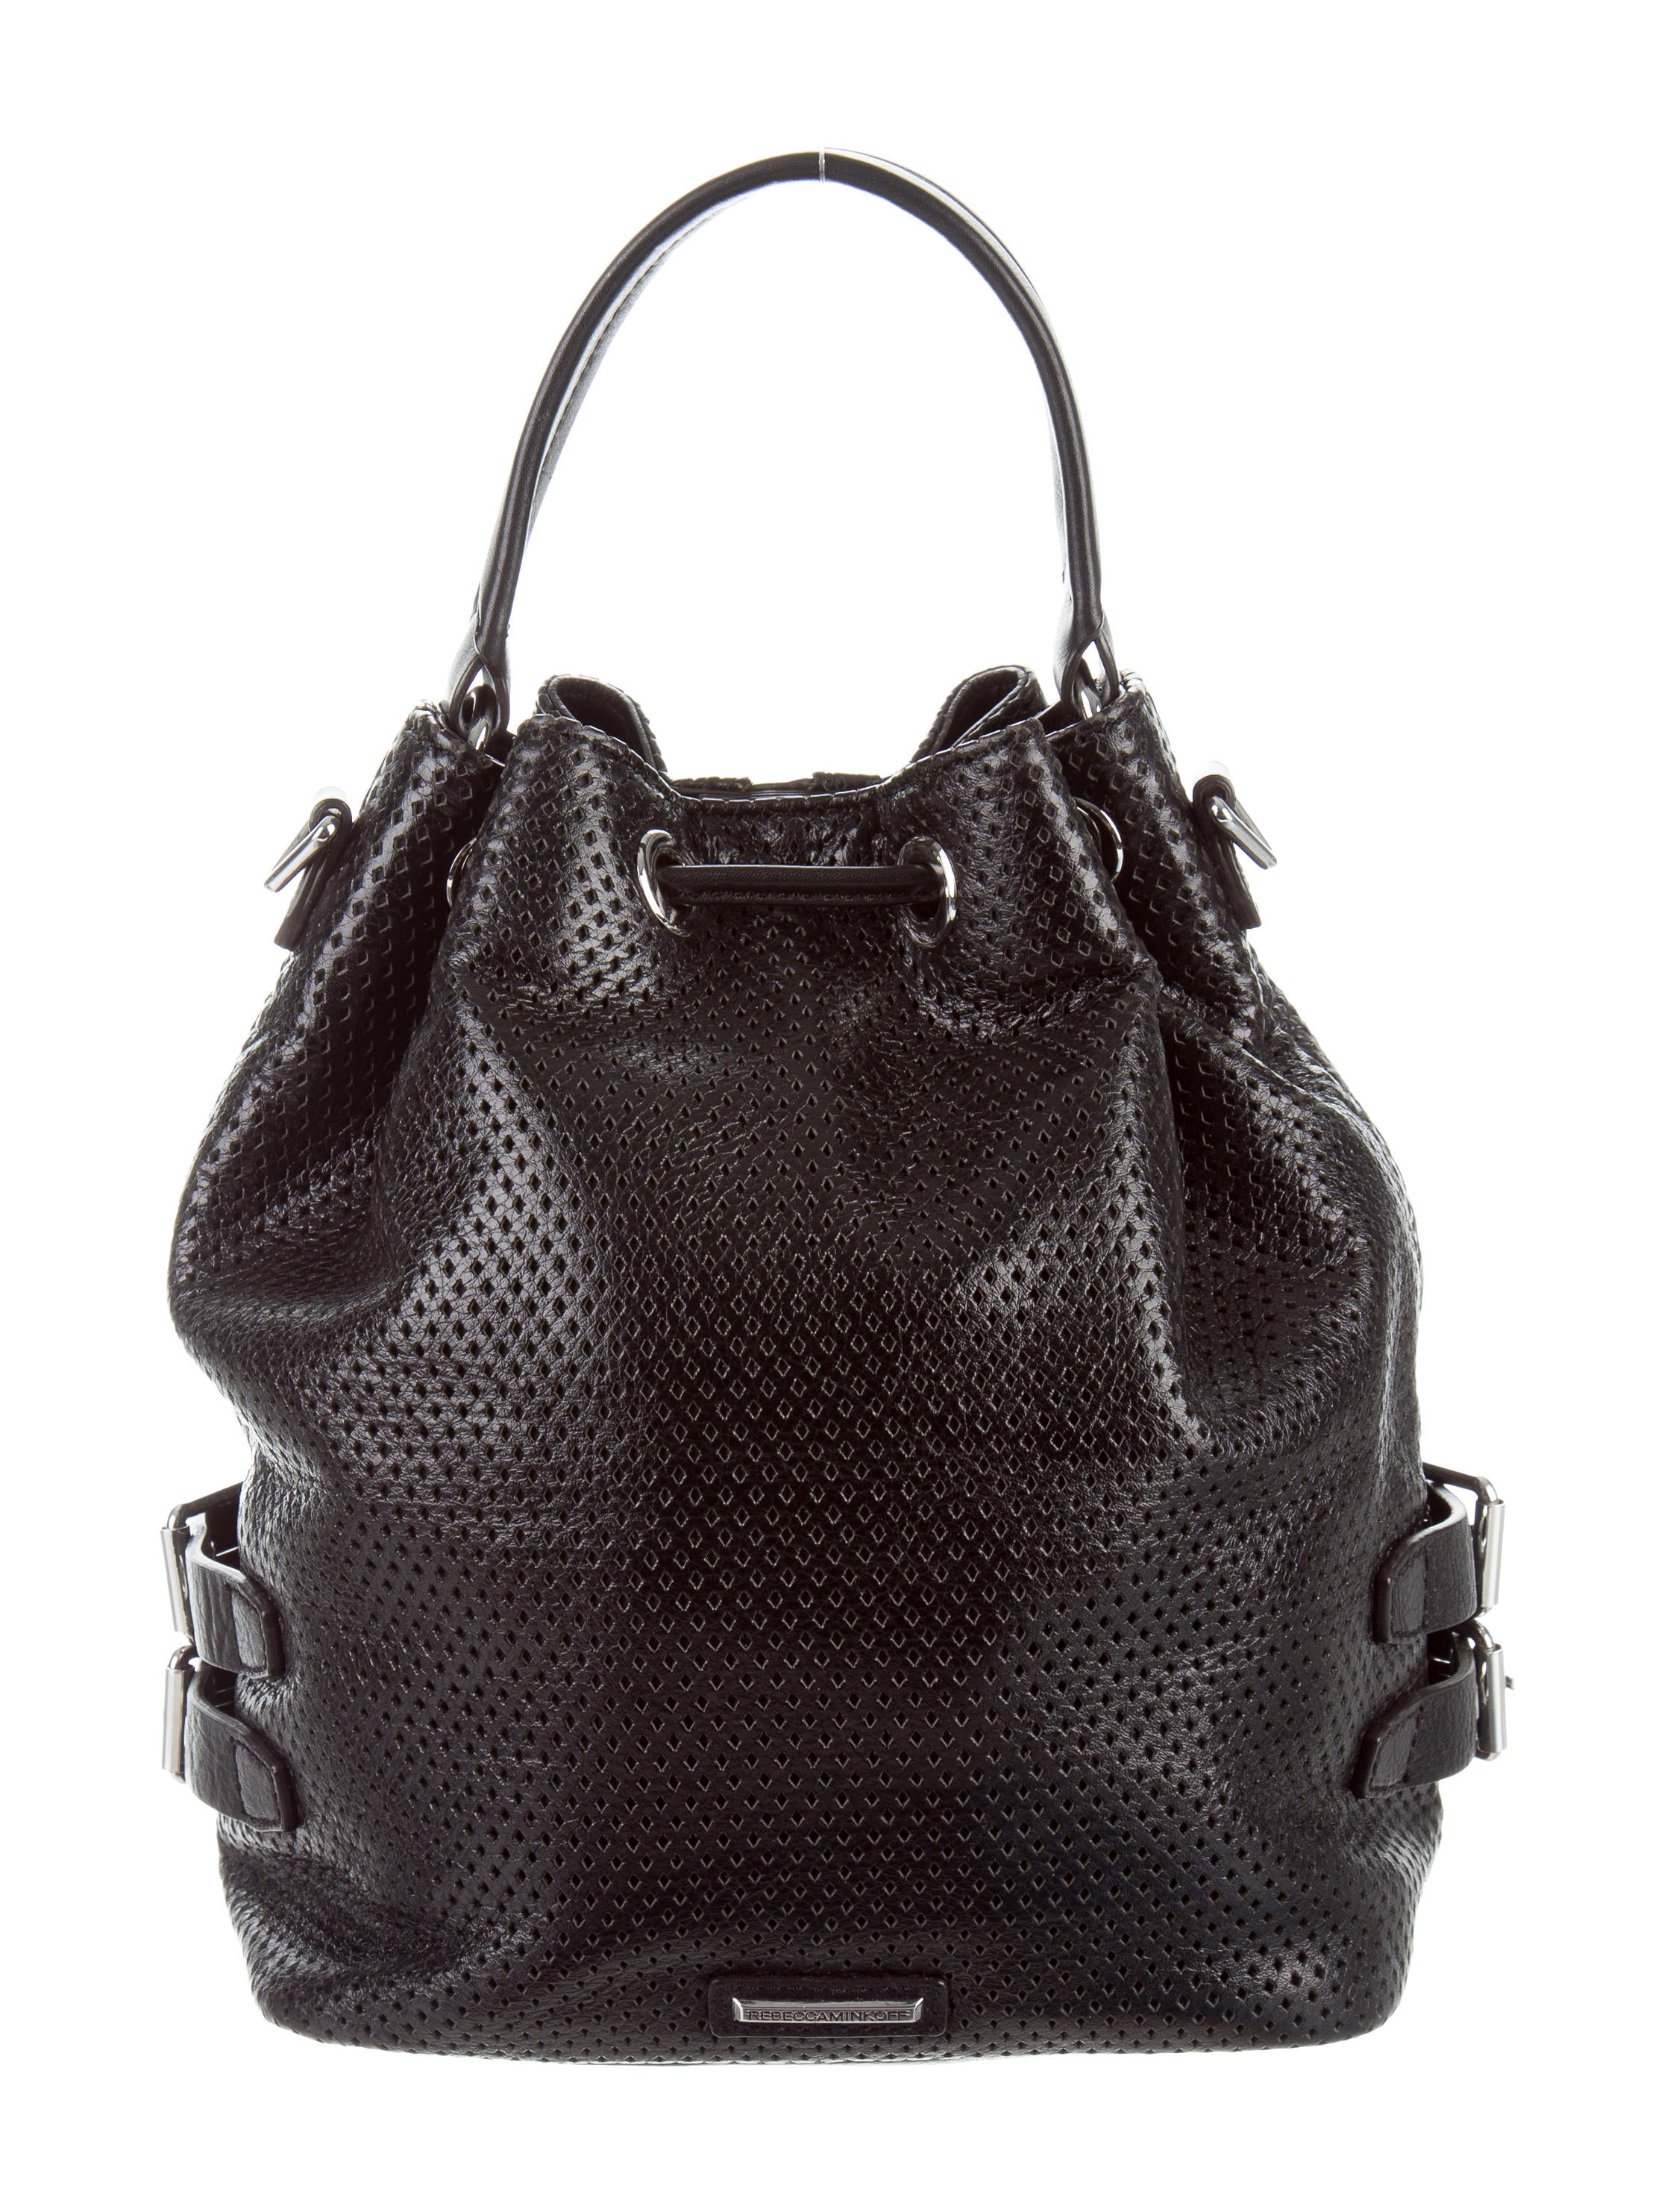 minkoff perforated moto bag handbags